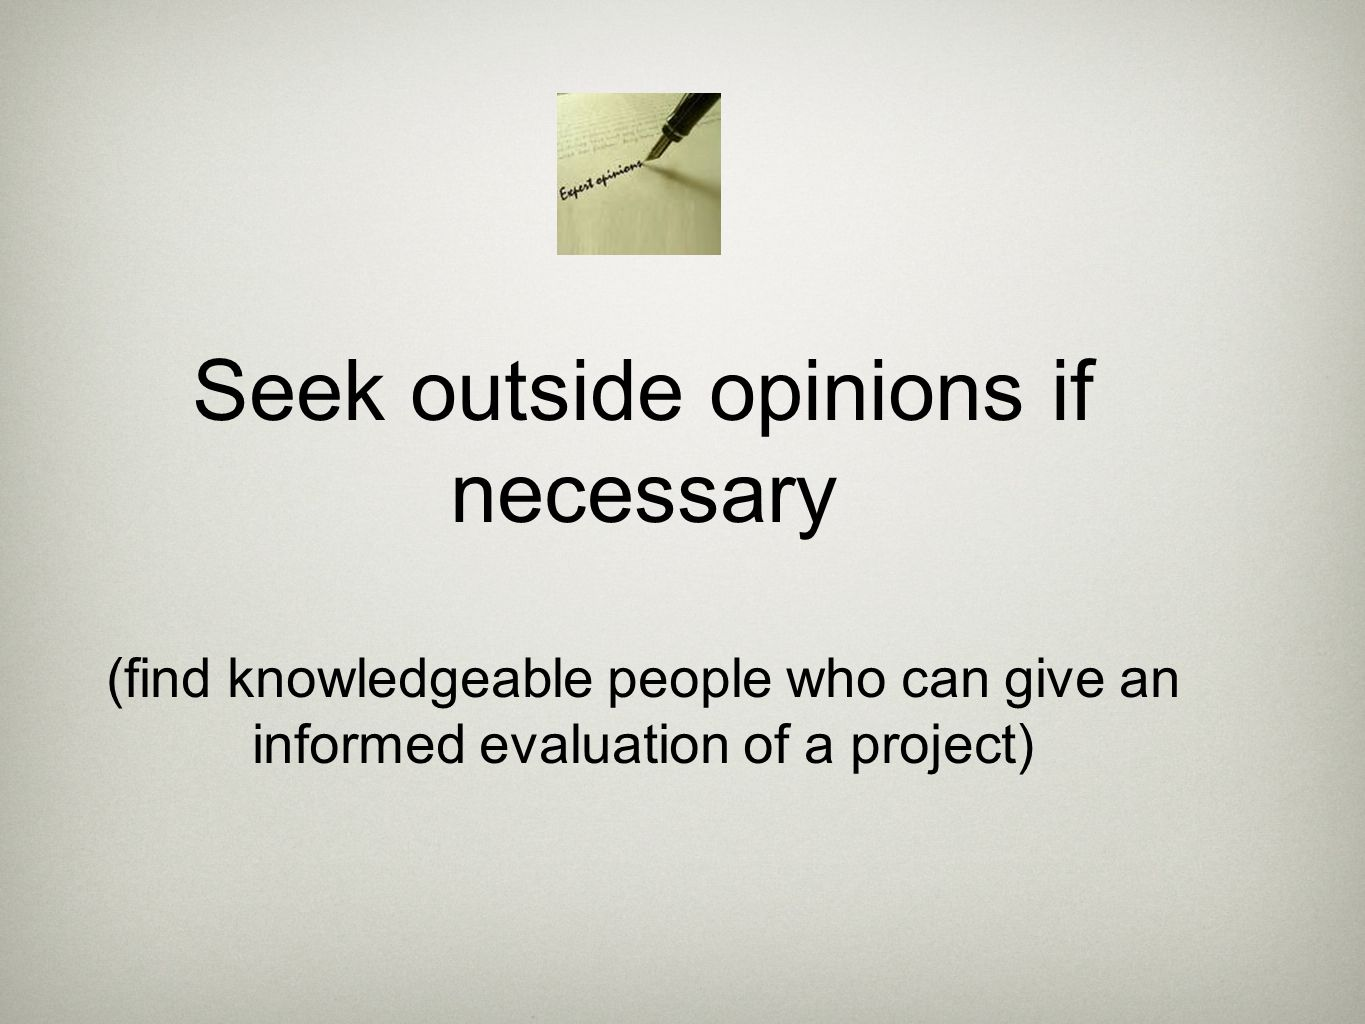 Seek outside opinions if necessary (find knowledgeable people who can give an informed evaluation of a project)